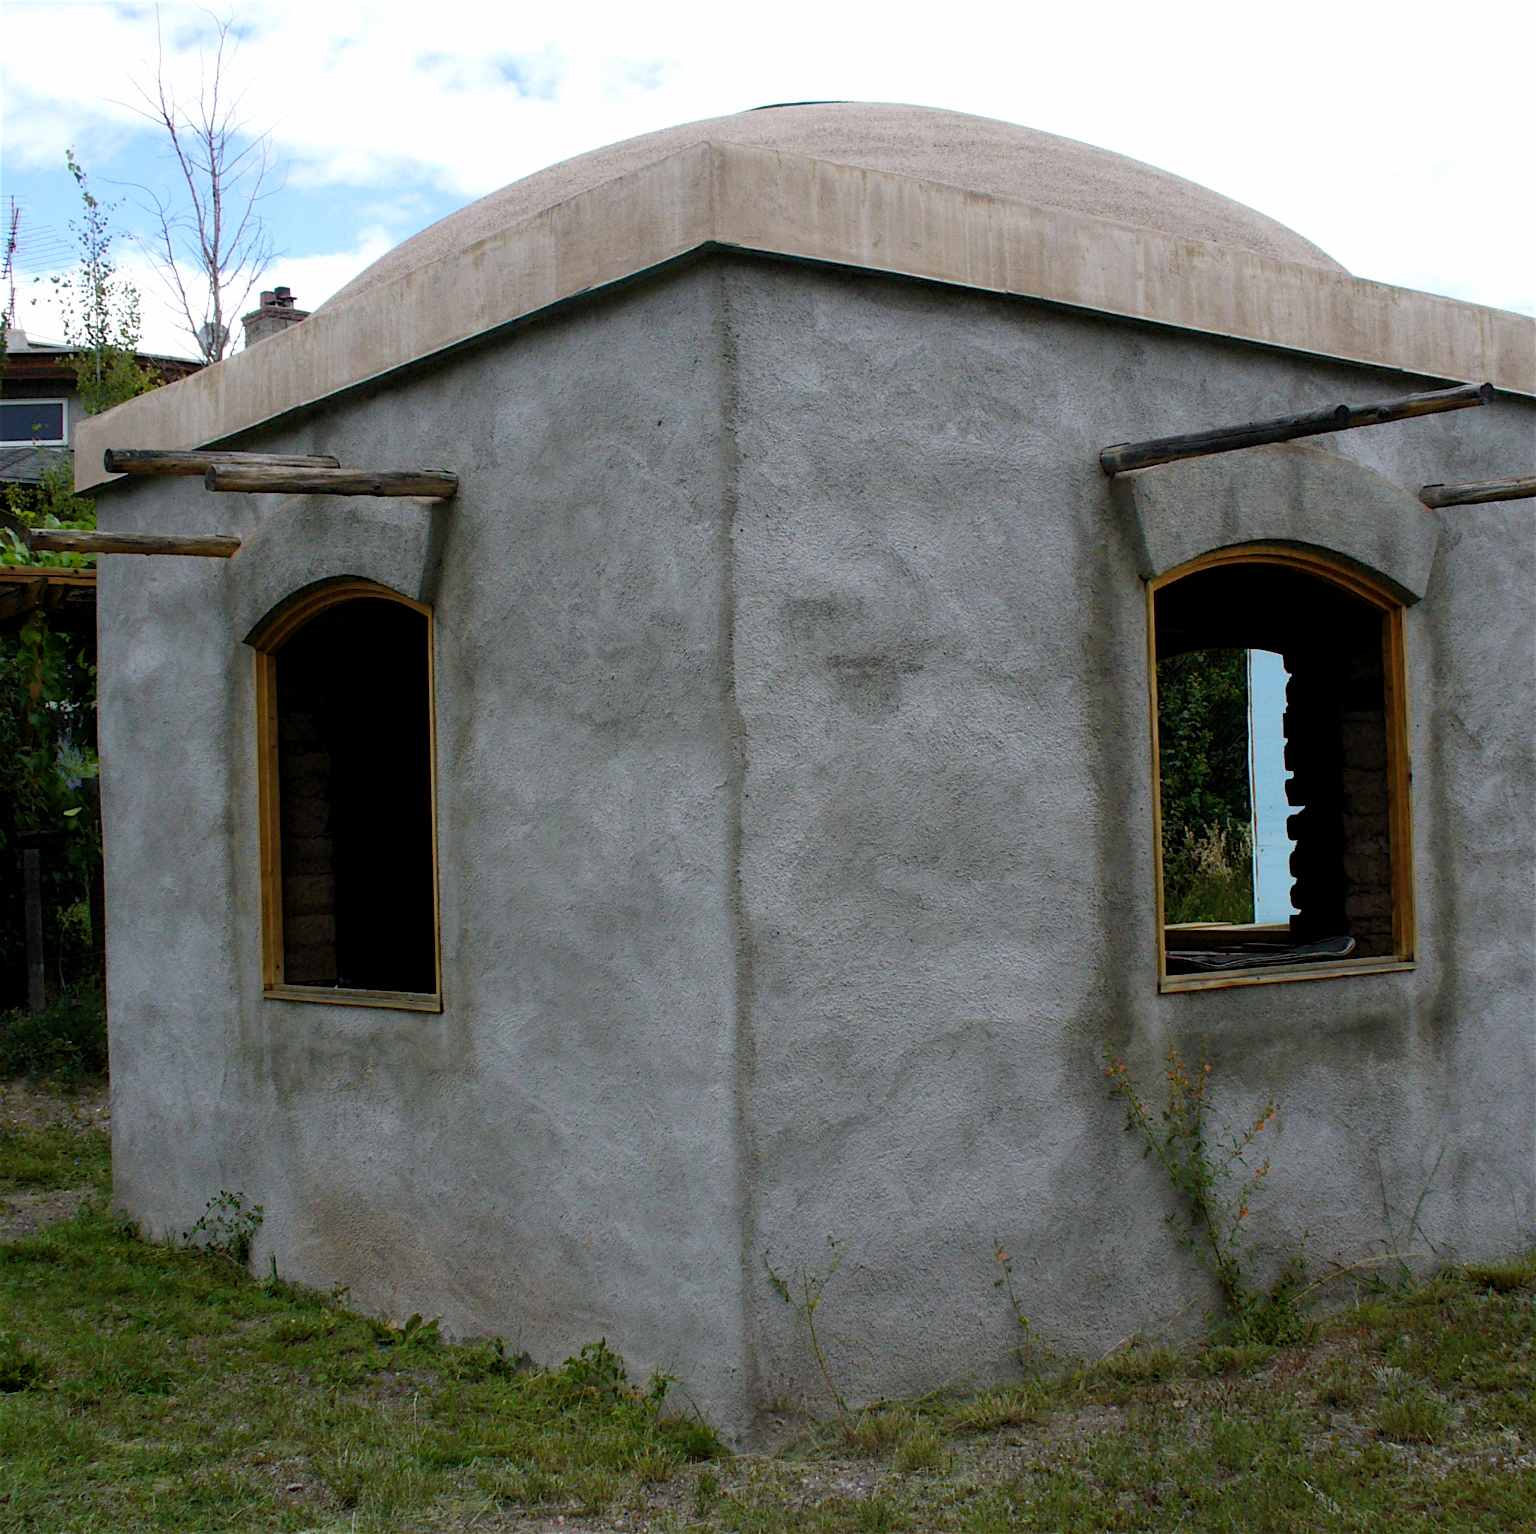 Alt build blog an adobe dome building Building an adobe house